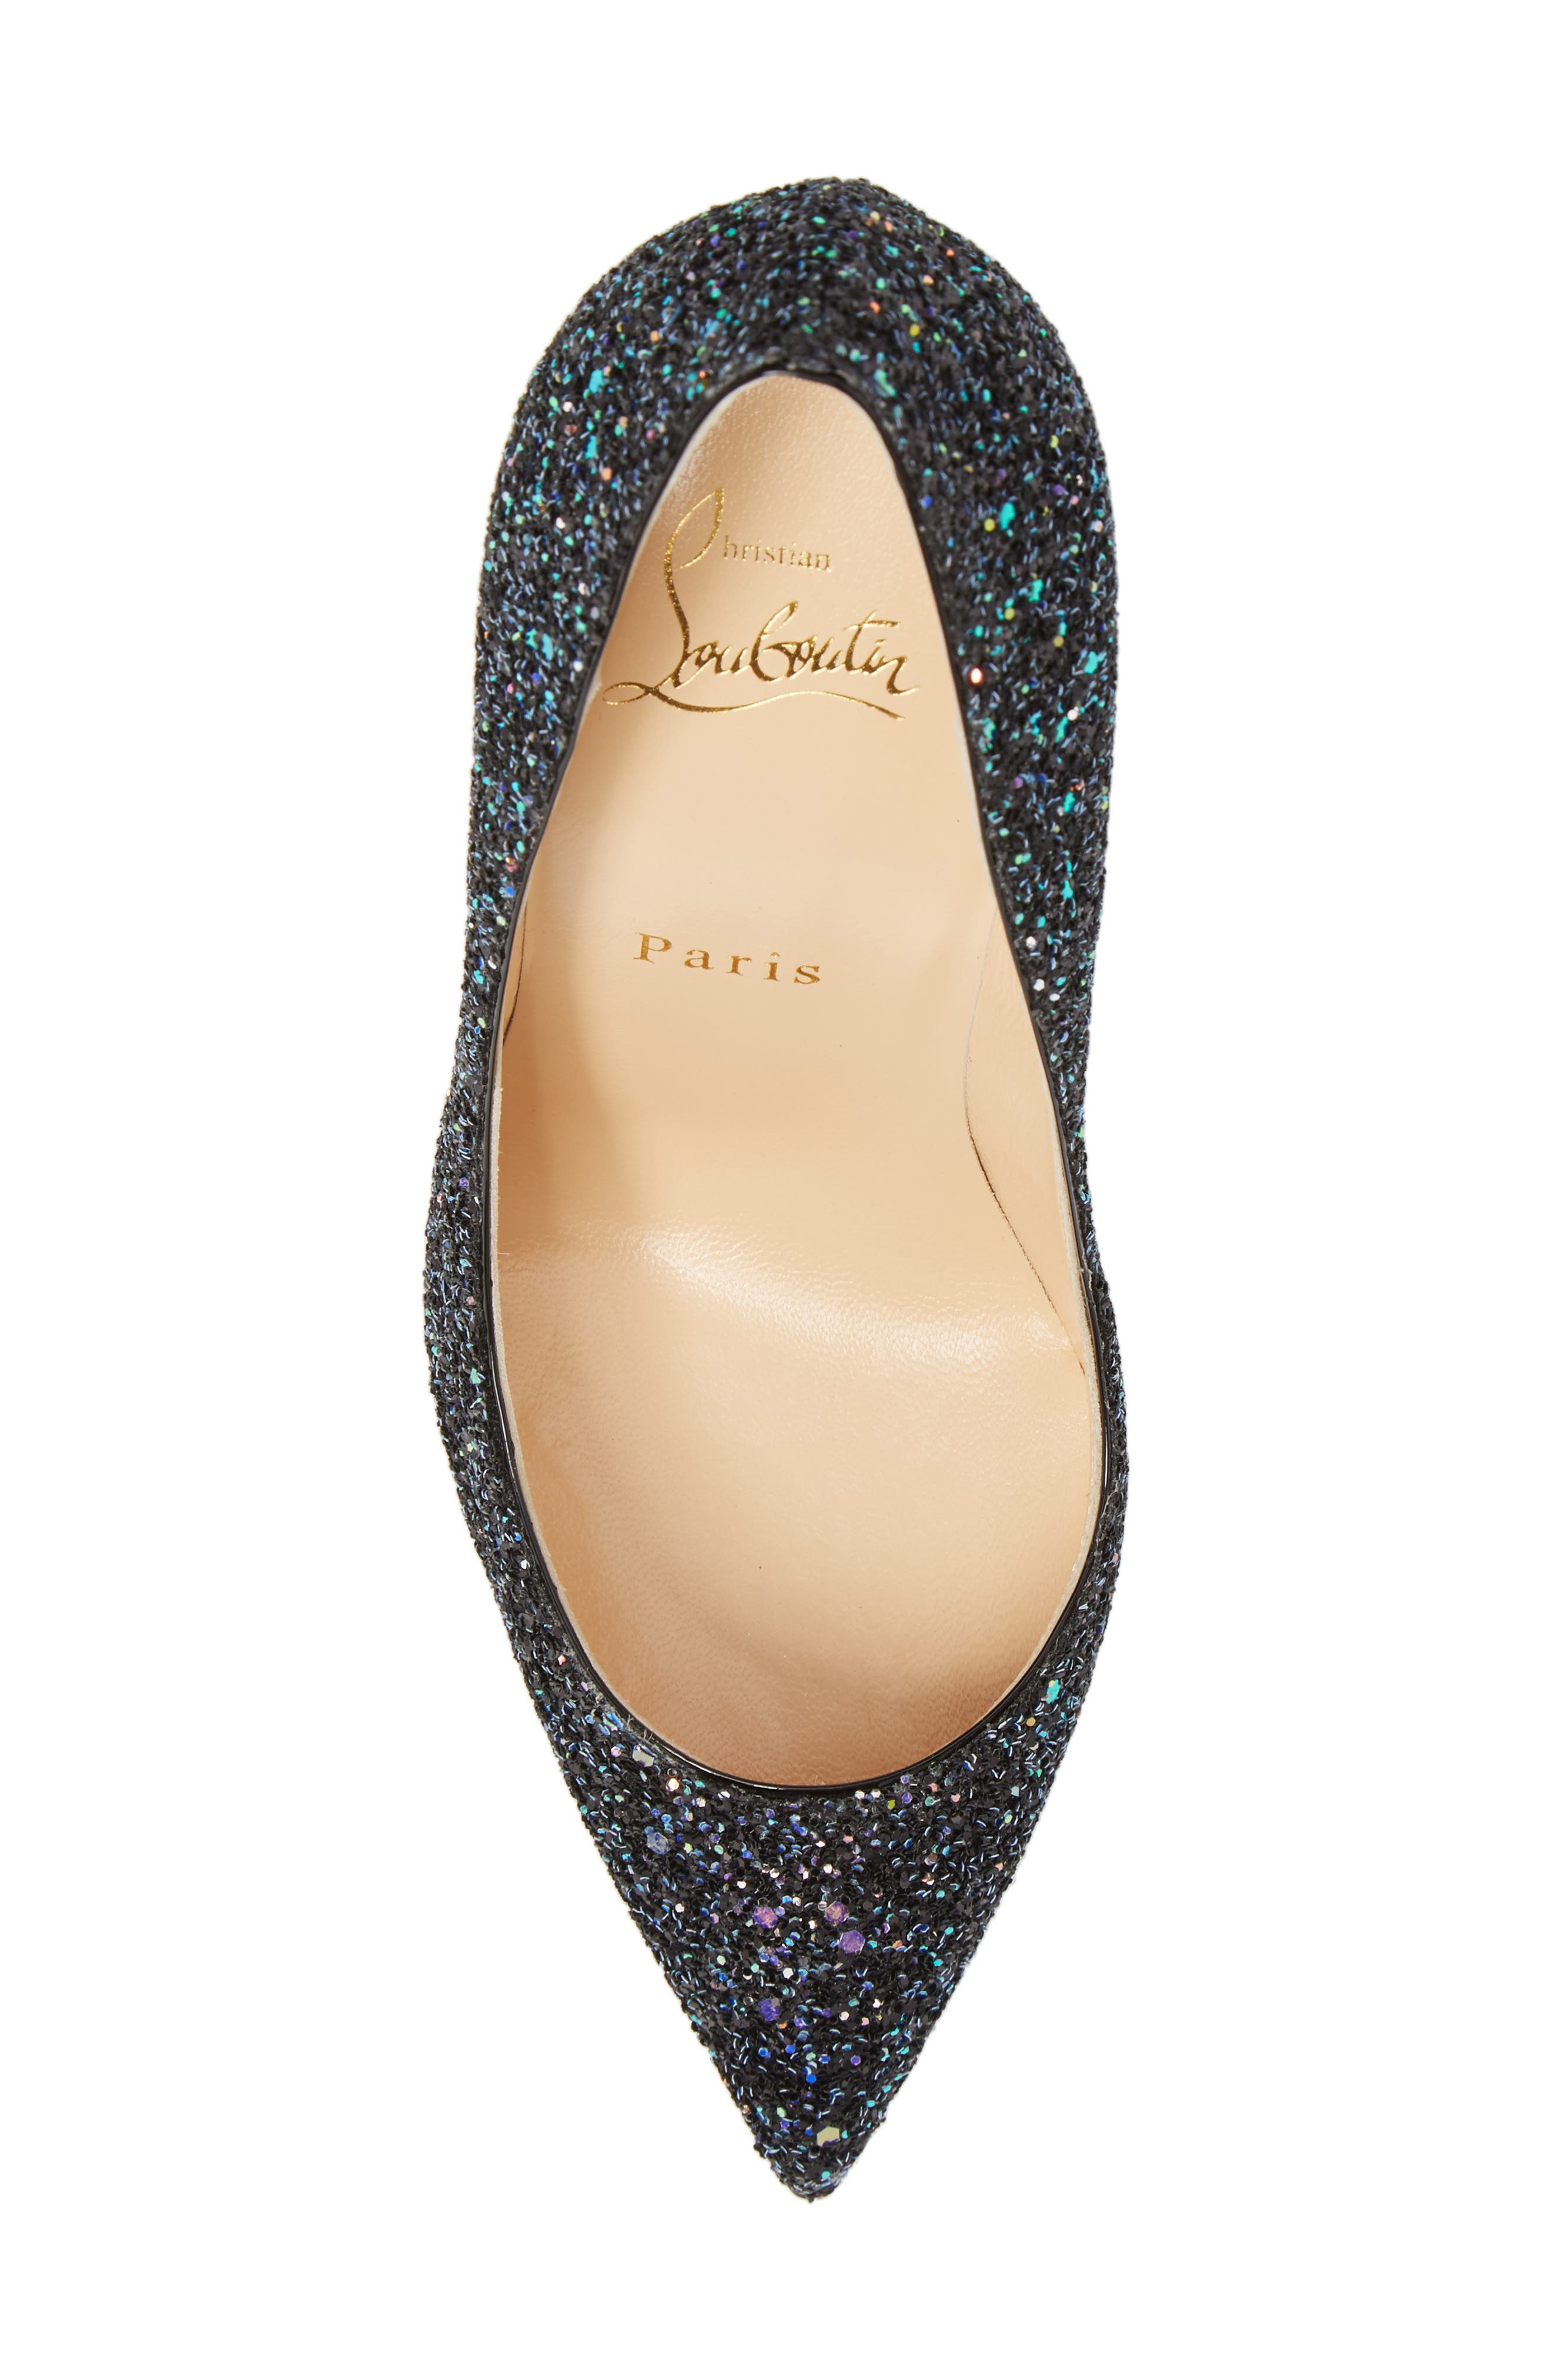 Pigalle Follies Glitter Pointy Toe Pump,                             Alternate thumbnail 5, color,                             001